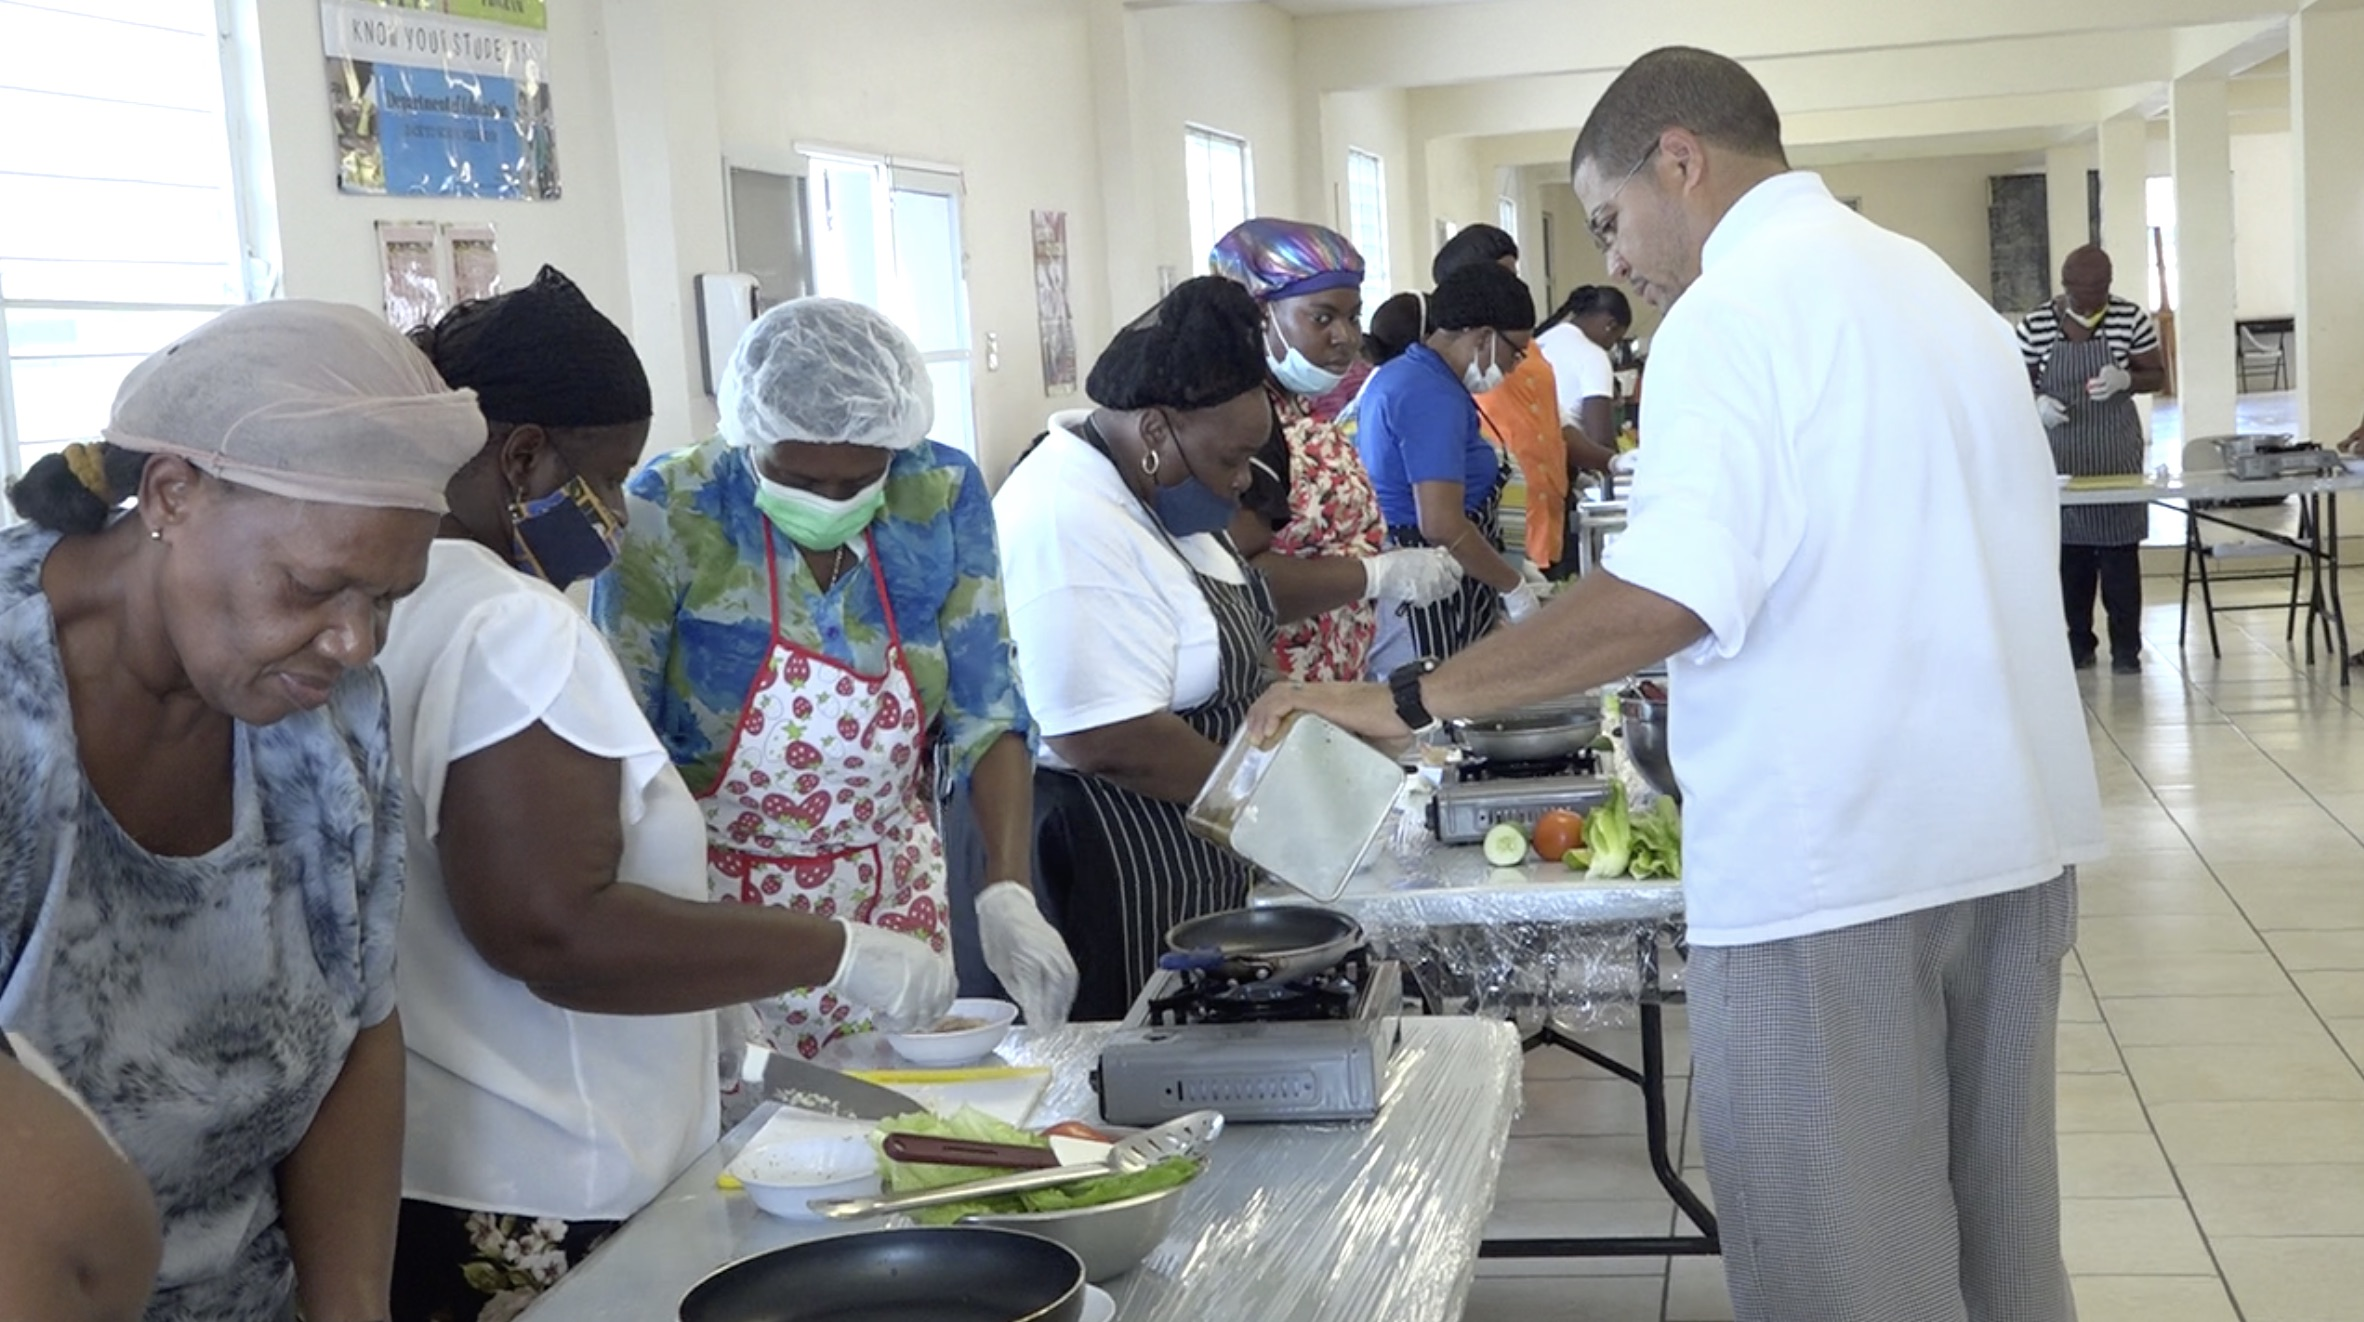 """Chef Michael Henville, Executive Chef and Food and Nutrition Specialist with the Nevis Island Administration's School Meals Programme, training cooking staff in meal preparation for a """"Tour Around the World"""" initiative for primary school students at a session at the Charlestown Primary School's cafeteria on March 10, 2021"""